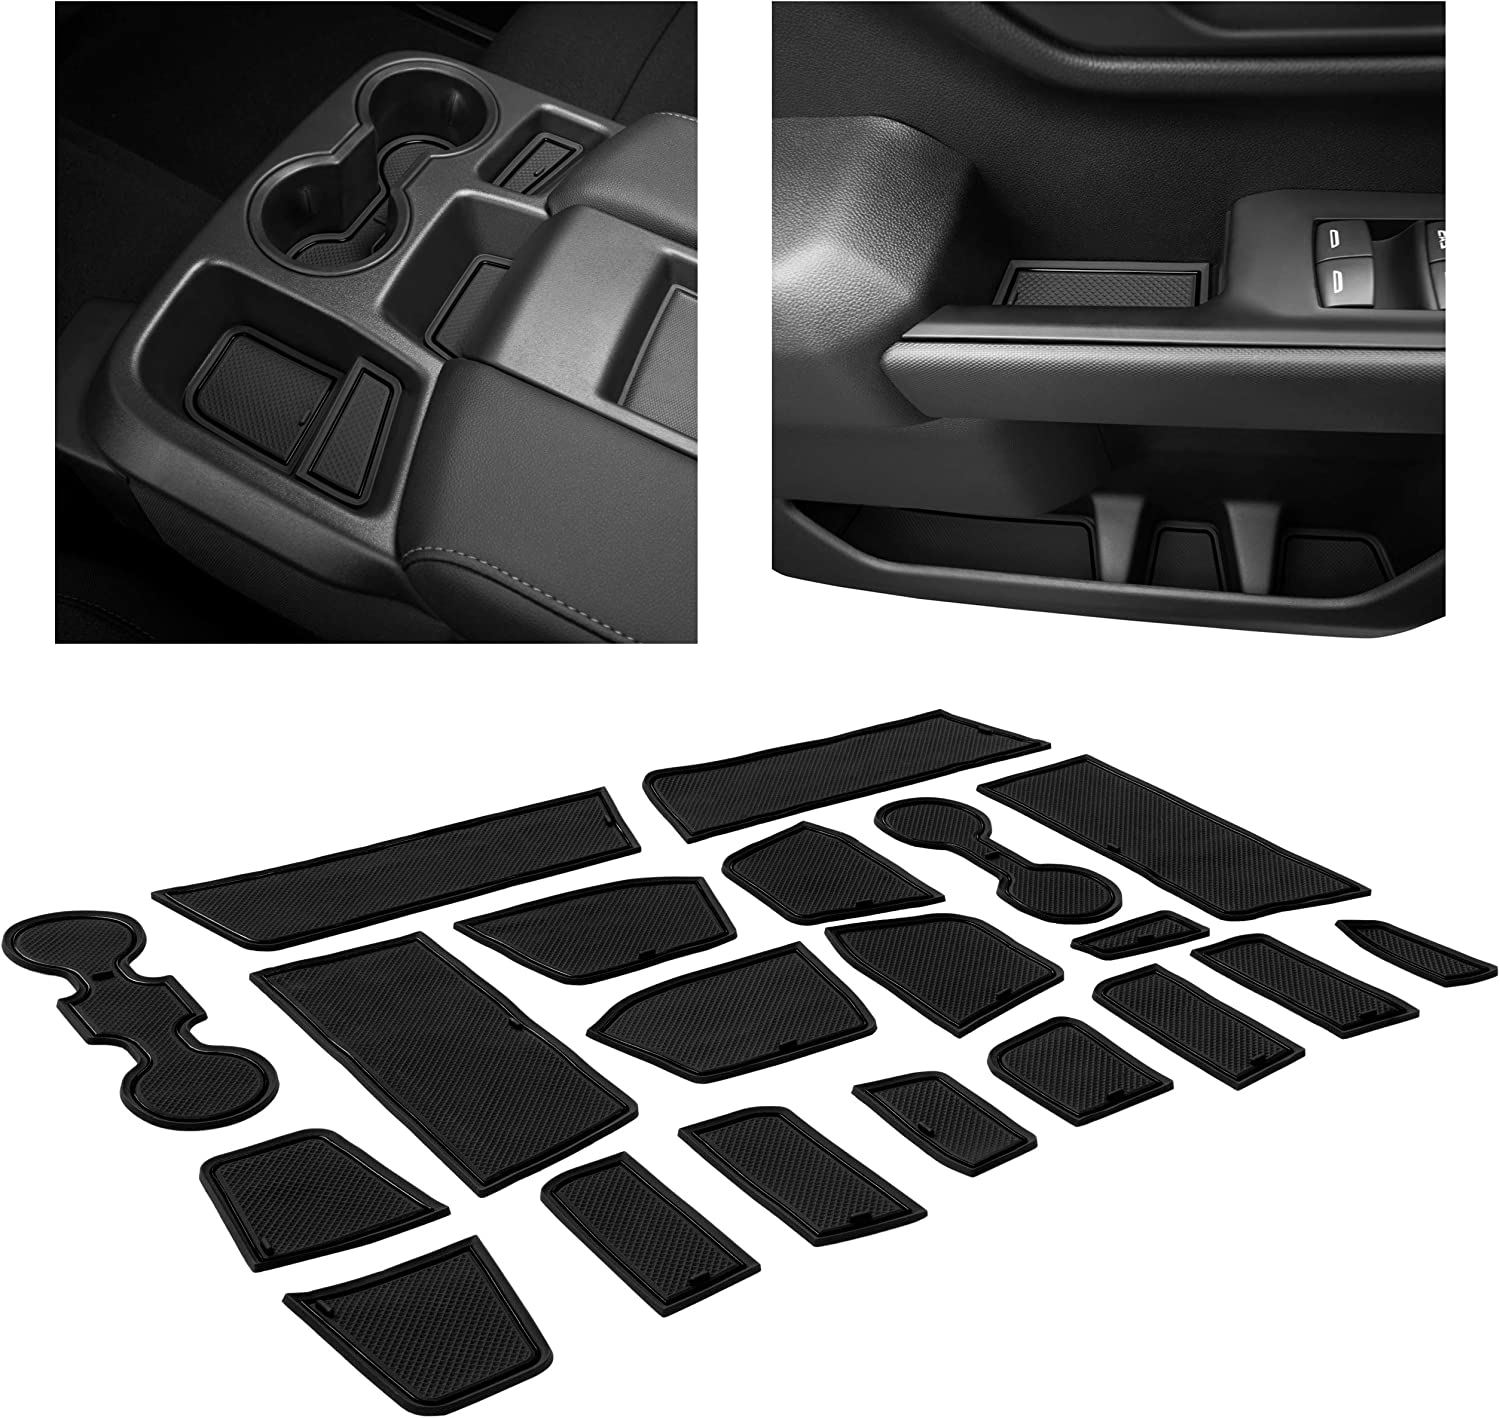 CupHolderHero for Chevy Silverado 1500 and GMC Sierra Accessories 2019-2021 Interior Cup Holder Inserts Gray Trim Center Console Liner Mats Crew Cab with Bucket Seats Door Pocket 24-pc Set